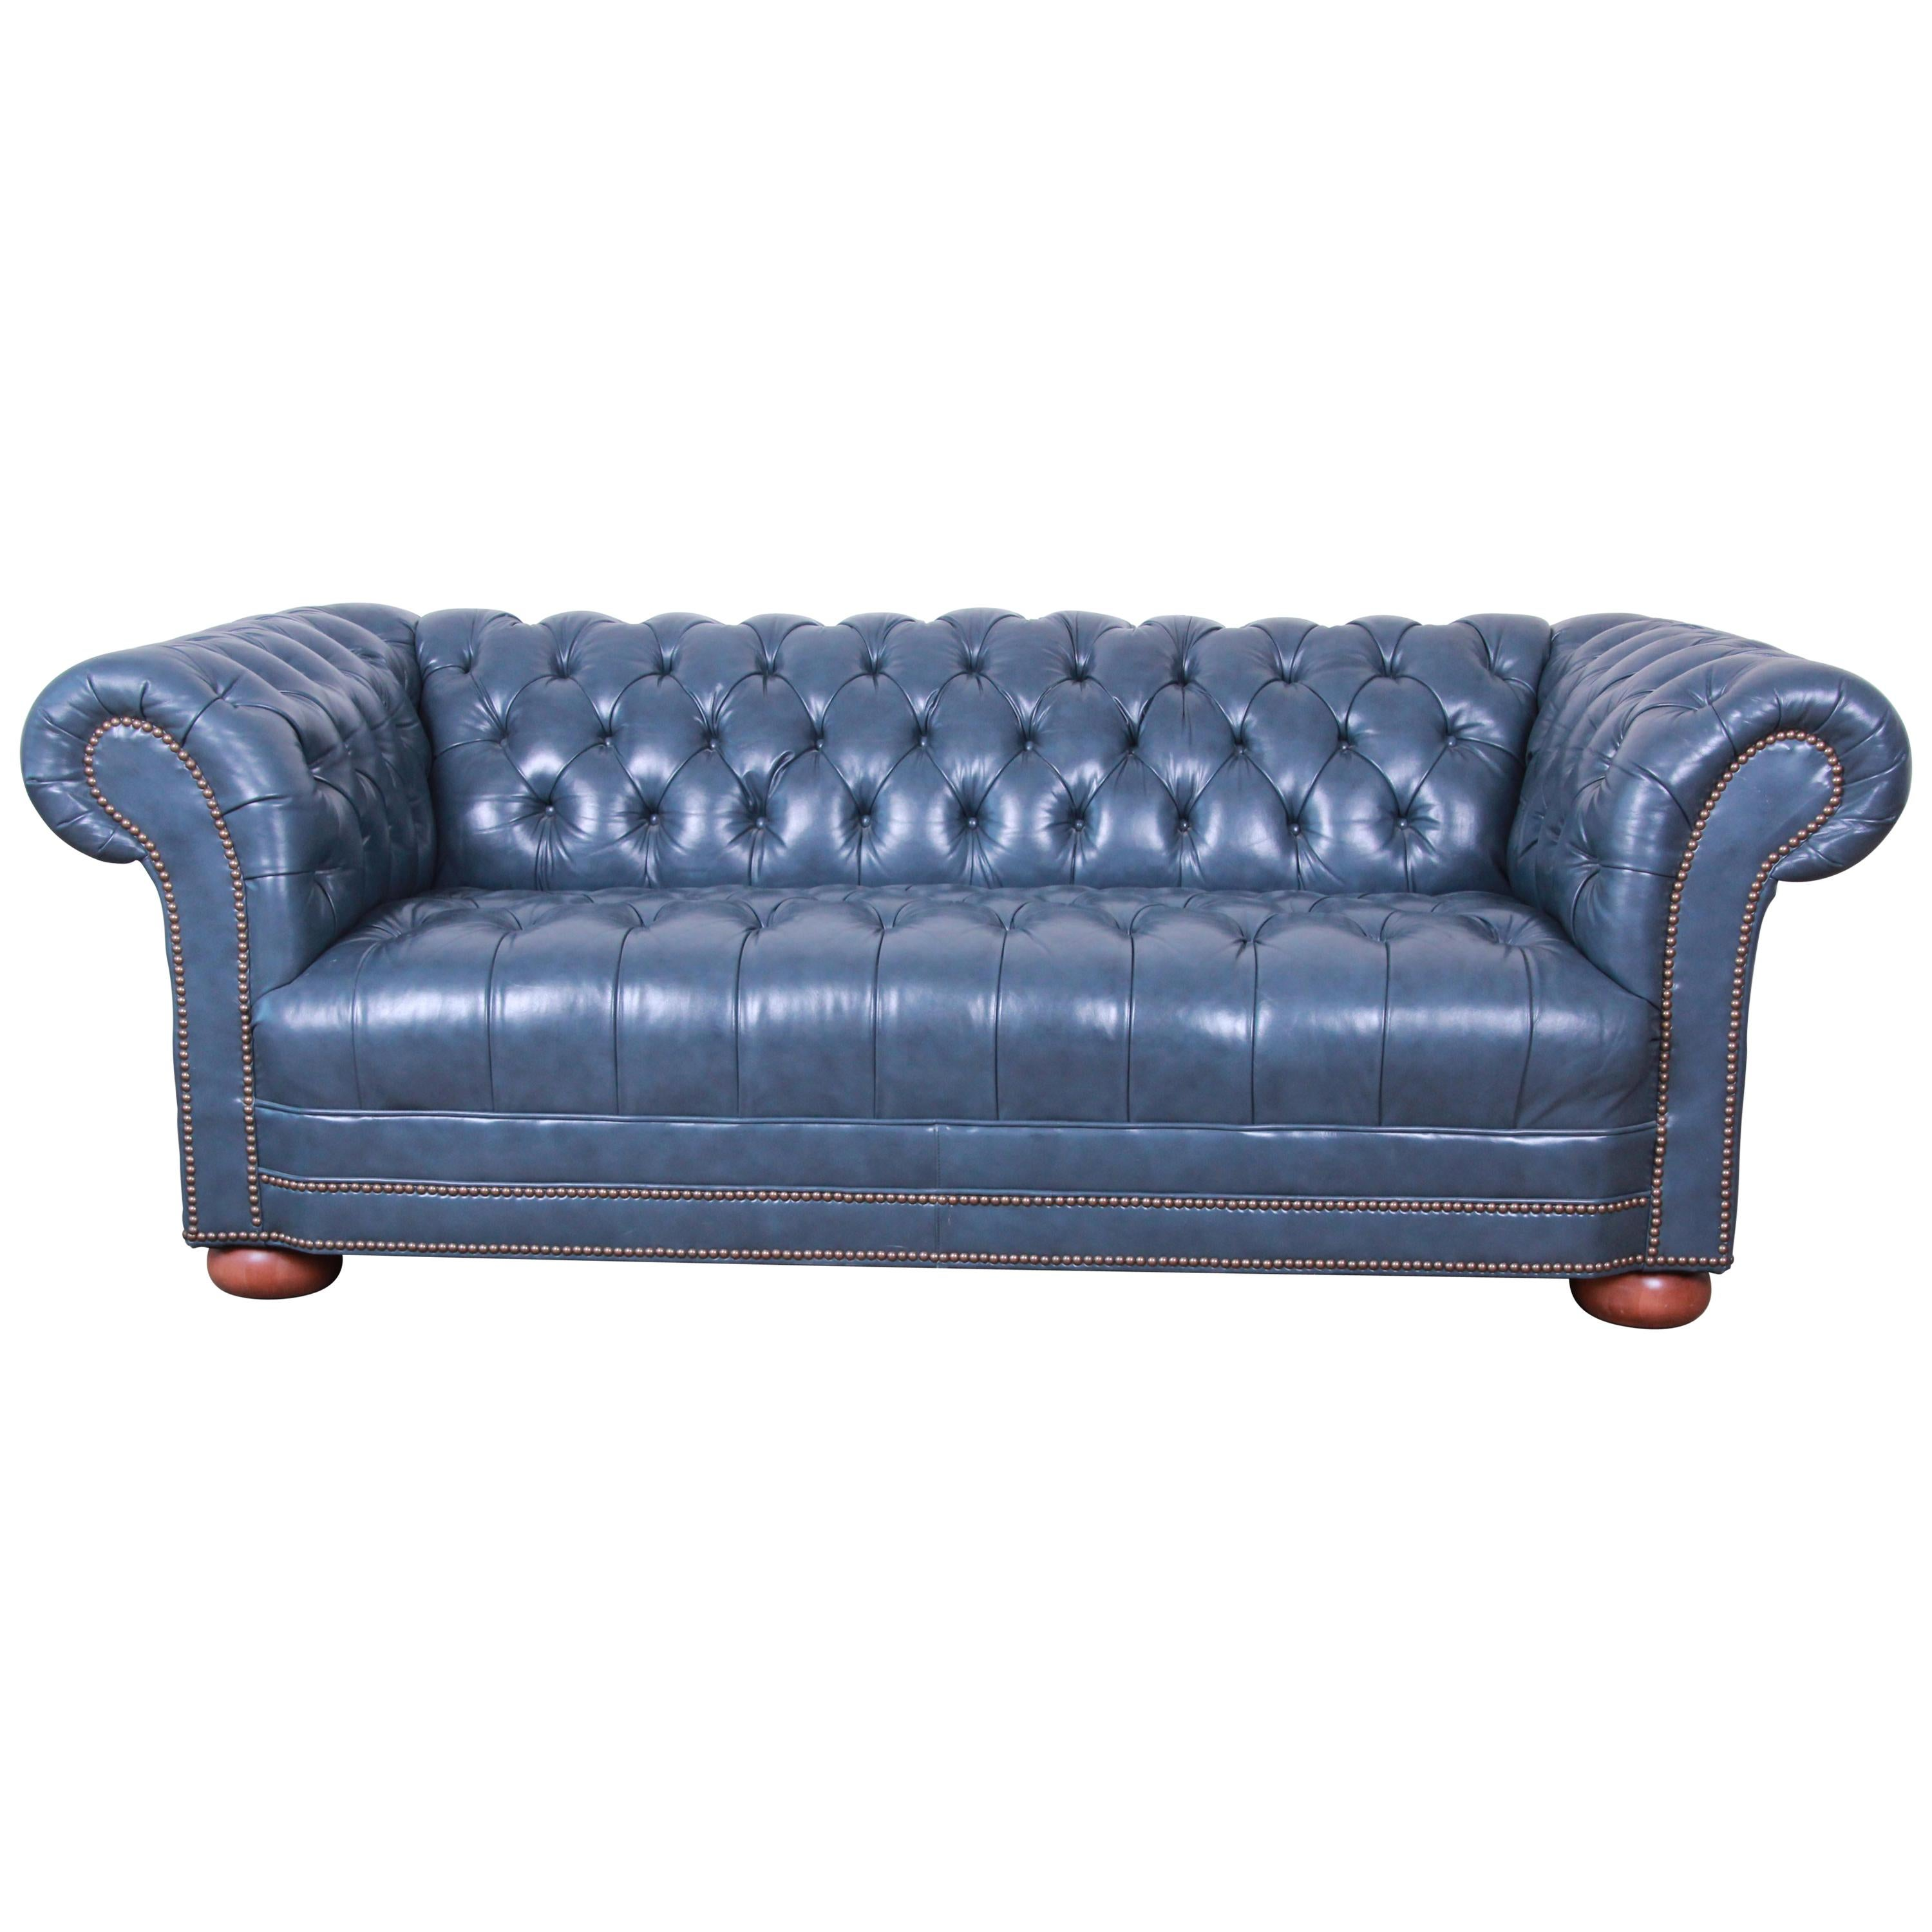 vintage tufted blue leather chesterfield sofa for sale at 1stdibs rh 1stdibs com blue leather chesterfield sofa for sale blue leather chesterfield sofa uk